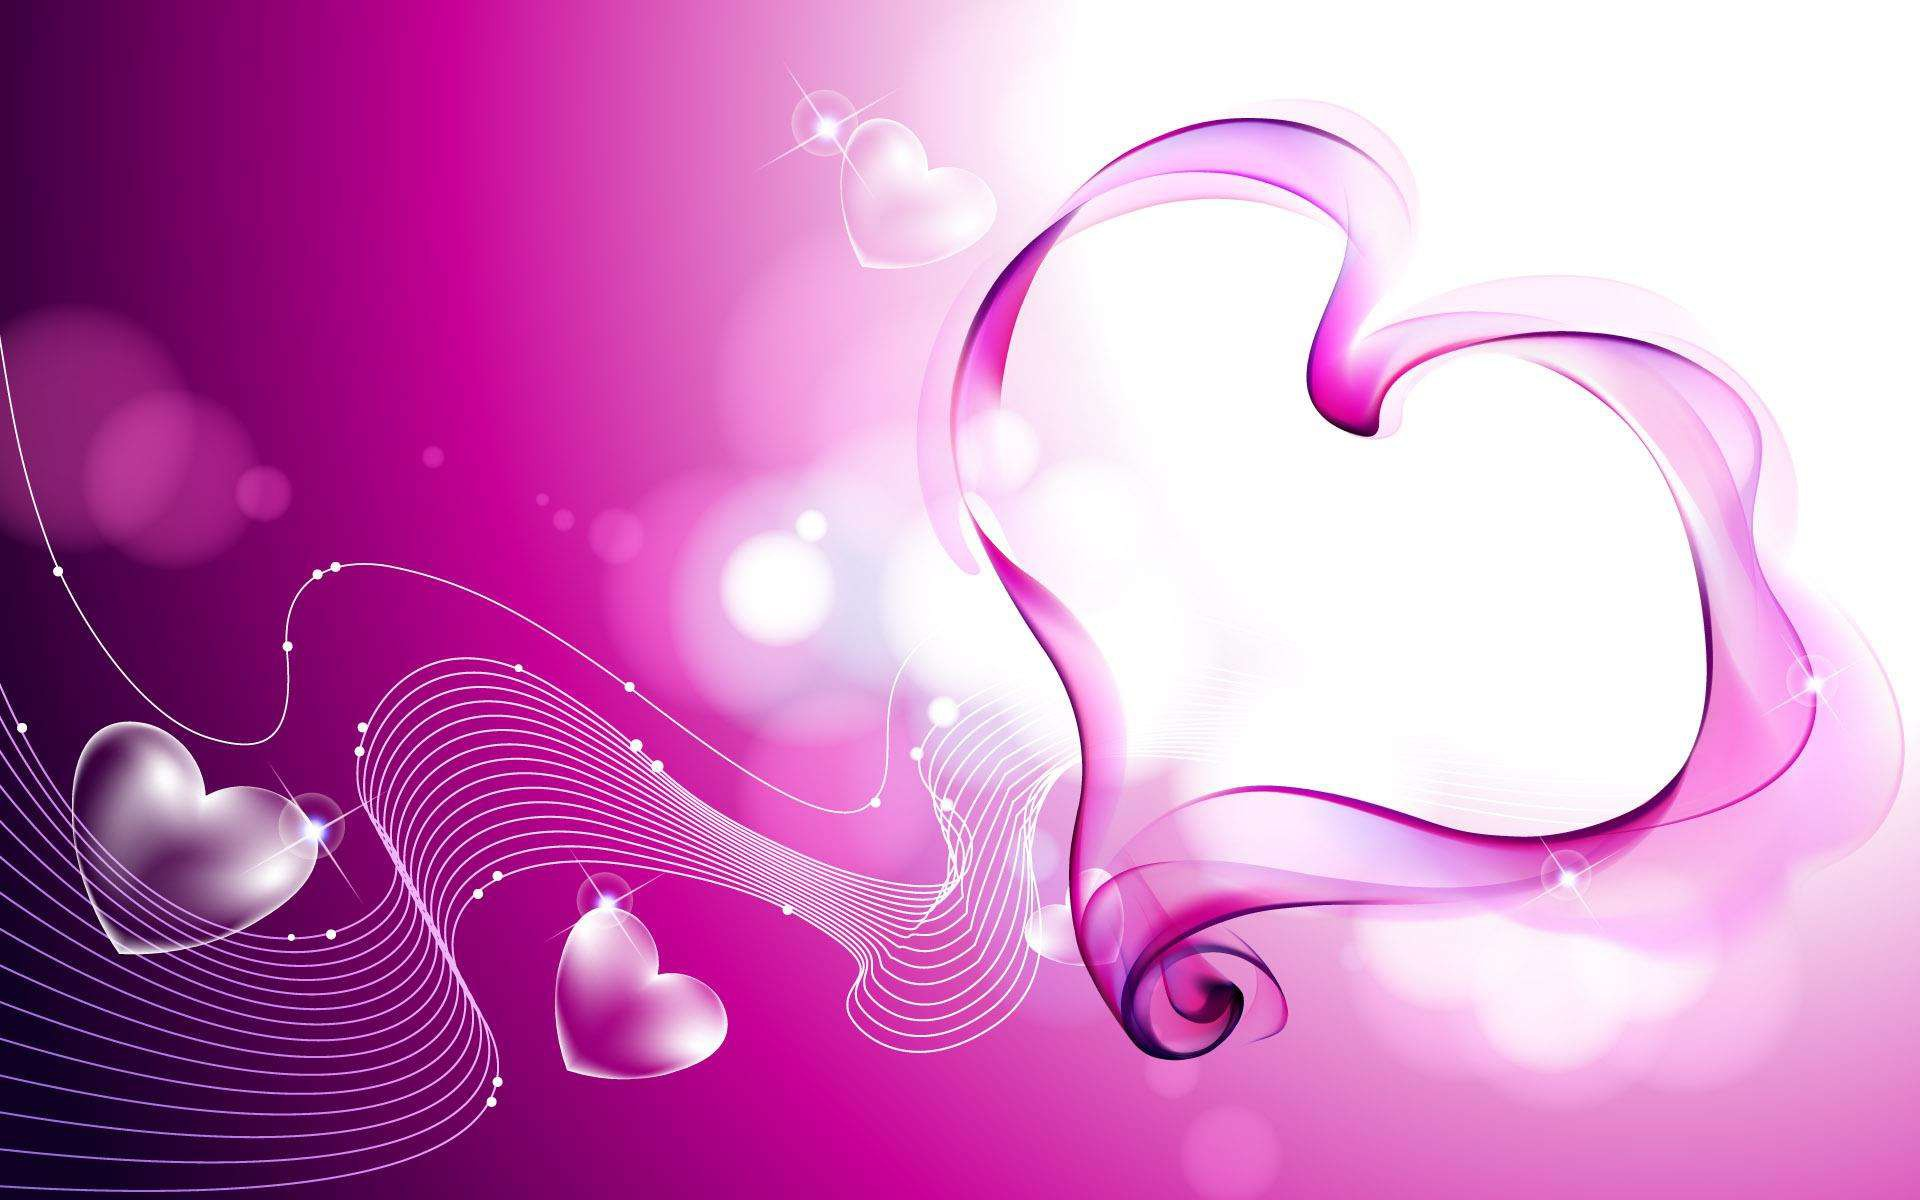 images/stories/pink-heart-love-art.jpg